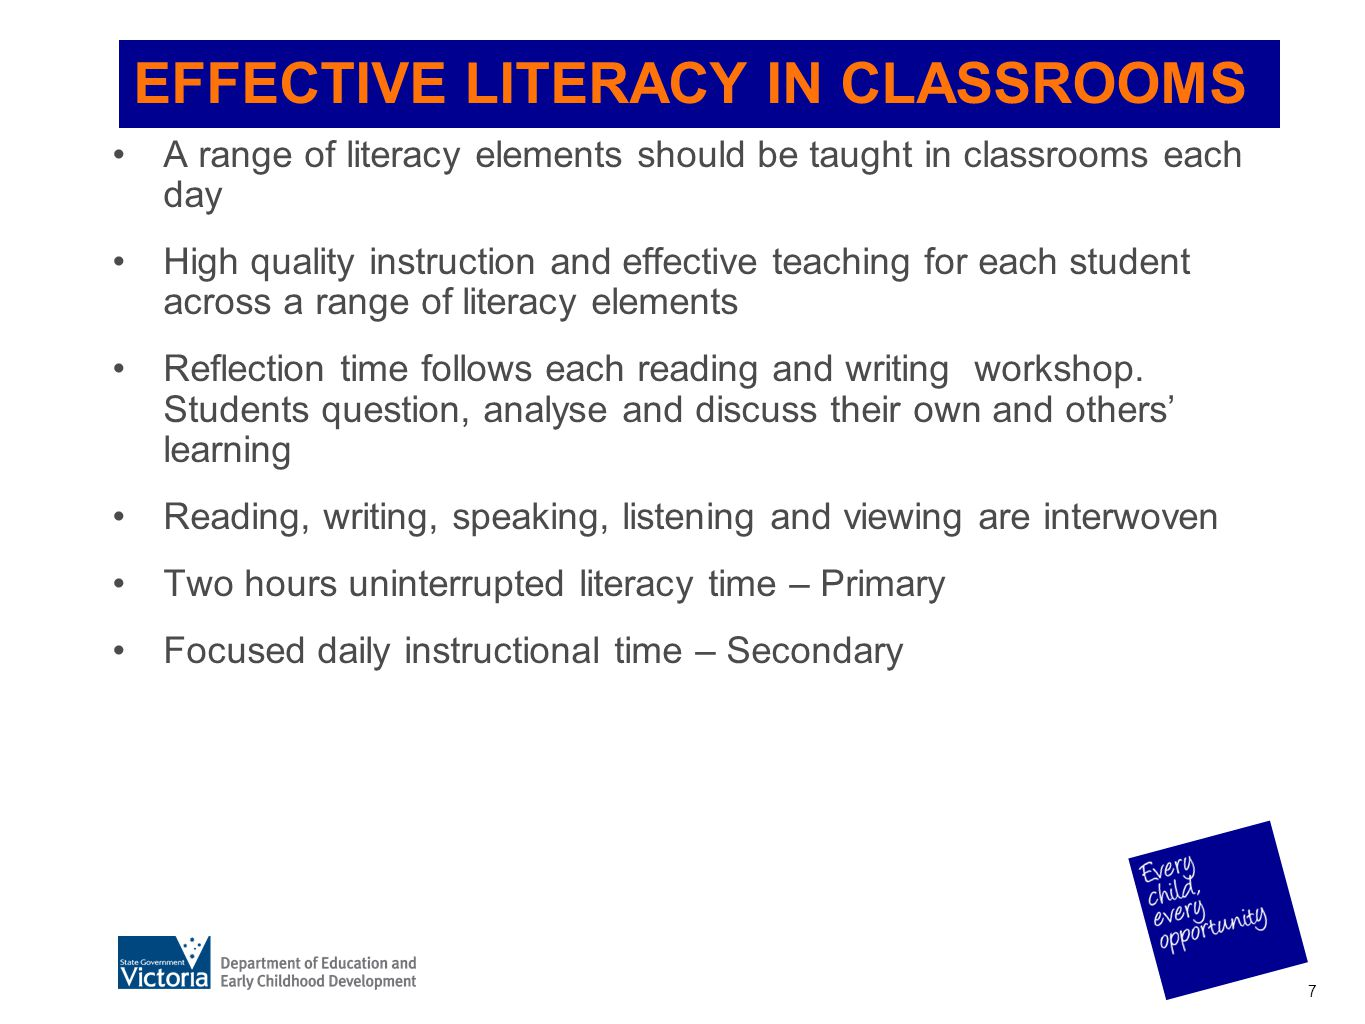 EFFECTIVE LITERACY IN CLASSROOMS